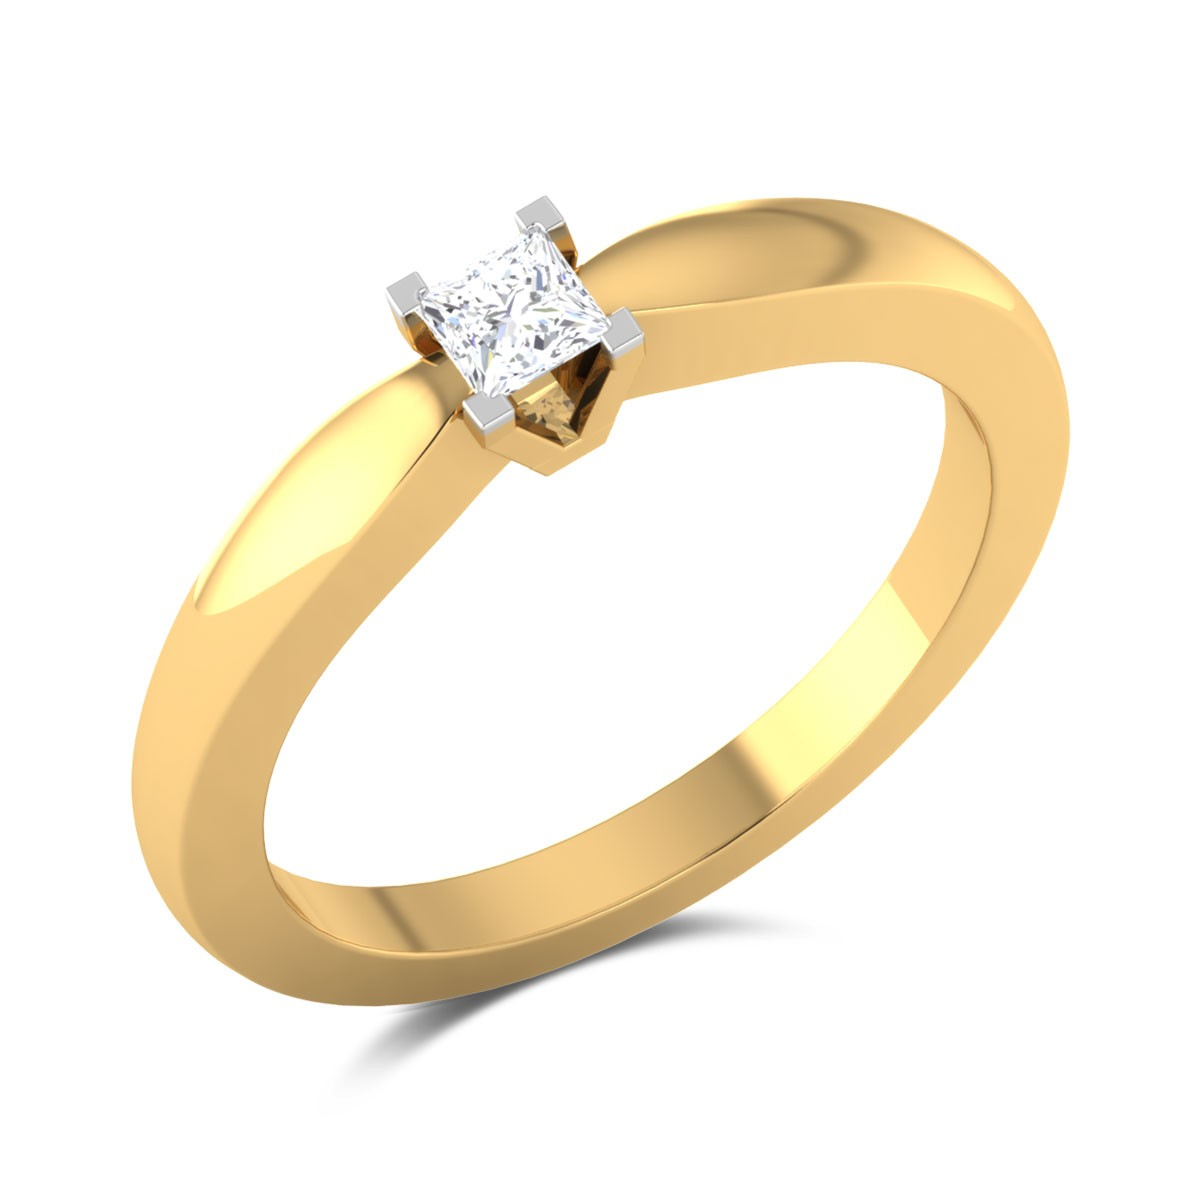 Golda Princess Cut Solitaire Ring